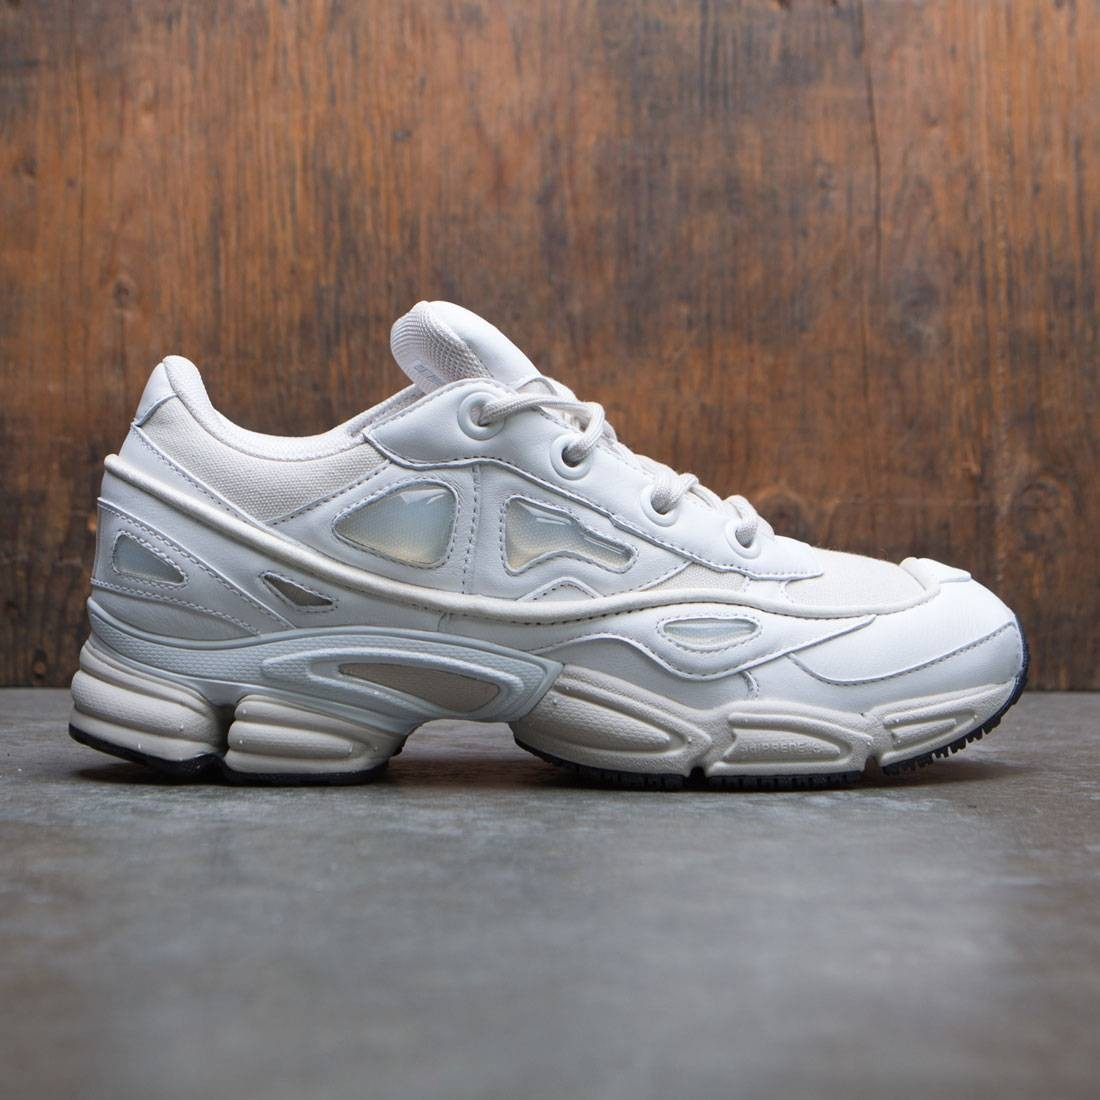 huge selection of 9d001 8fc2e Adidas x Raf Simons Men Ozweego III (white / talcs / footwear white)